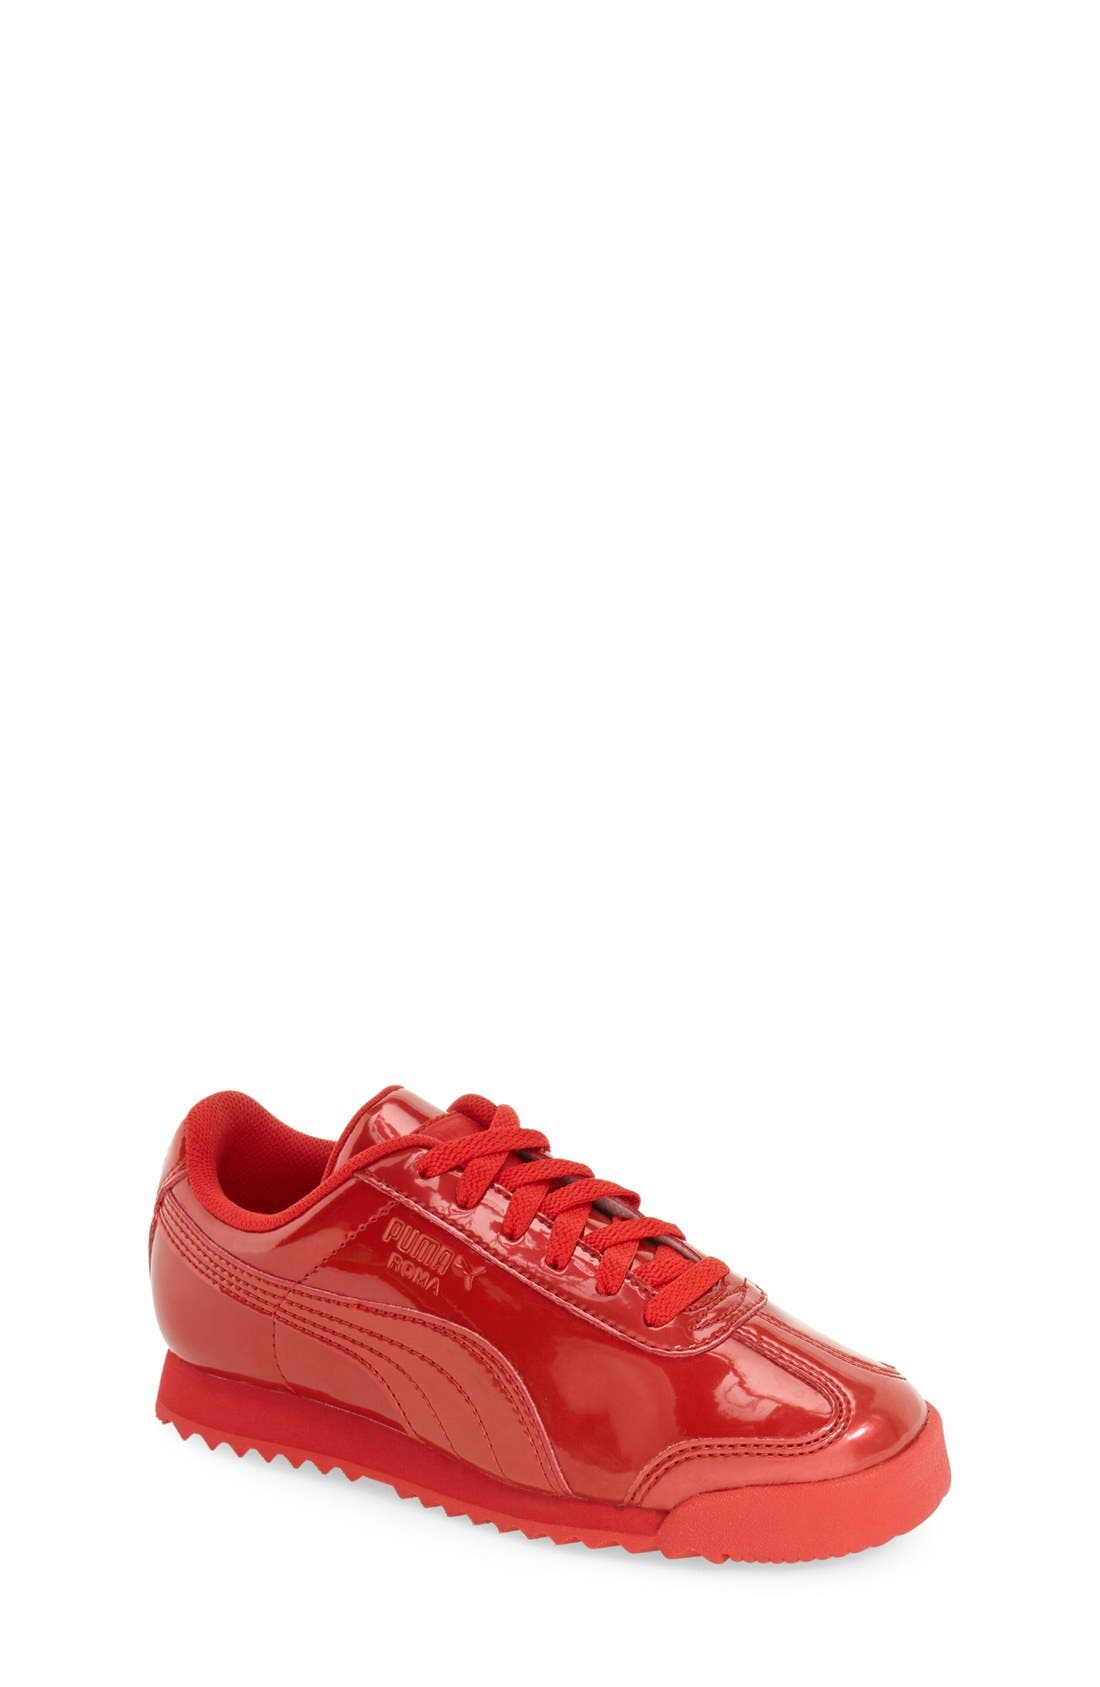 'Roma' Sneaker,                         Main,                         color, 600